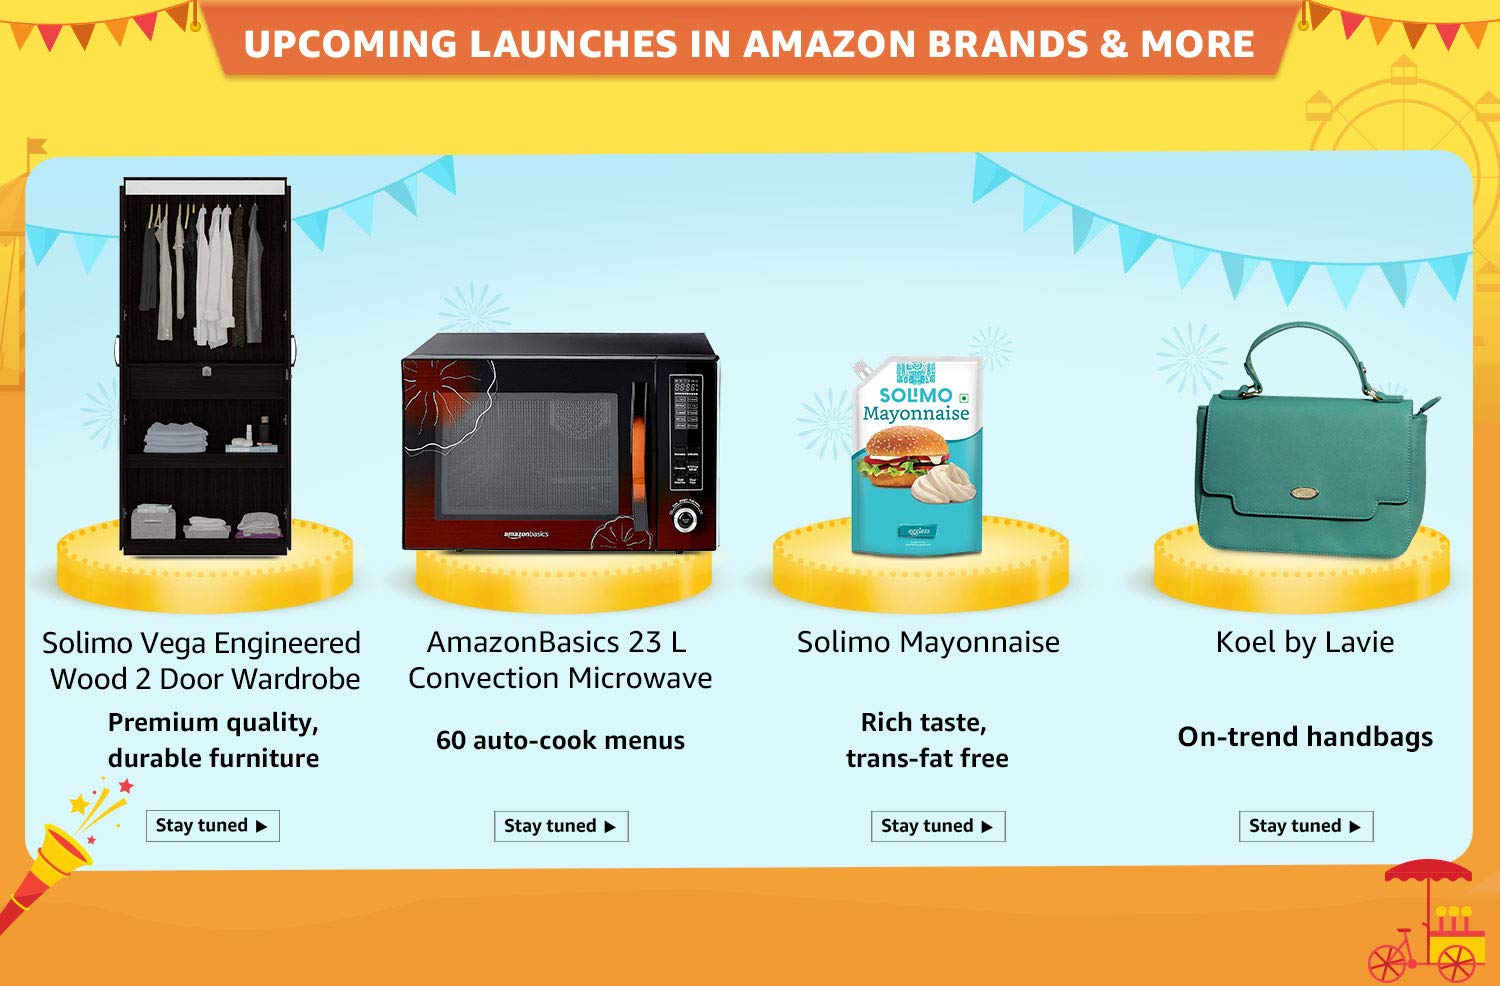 Amazon Brand launches